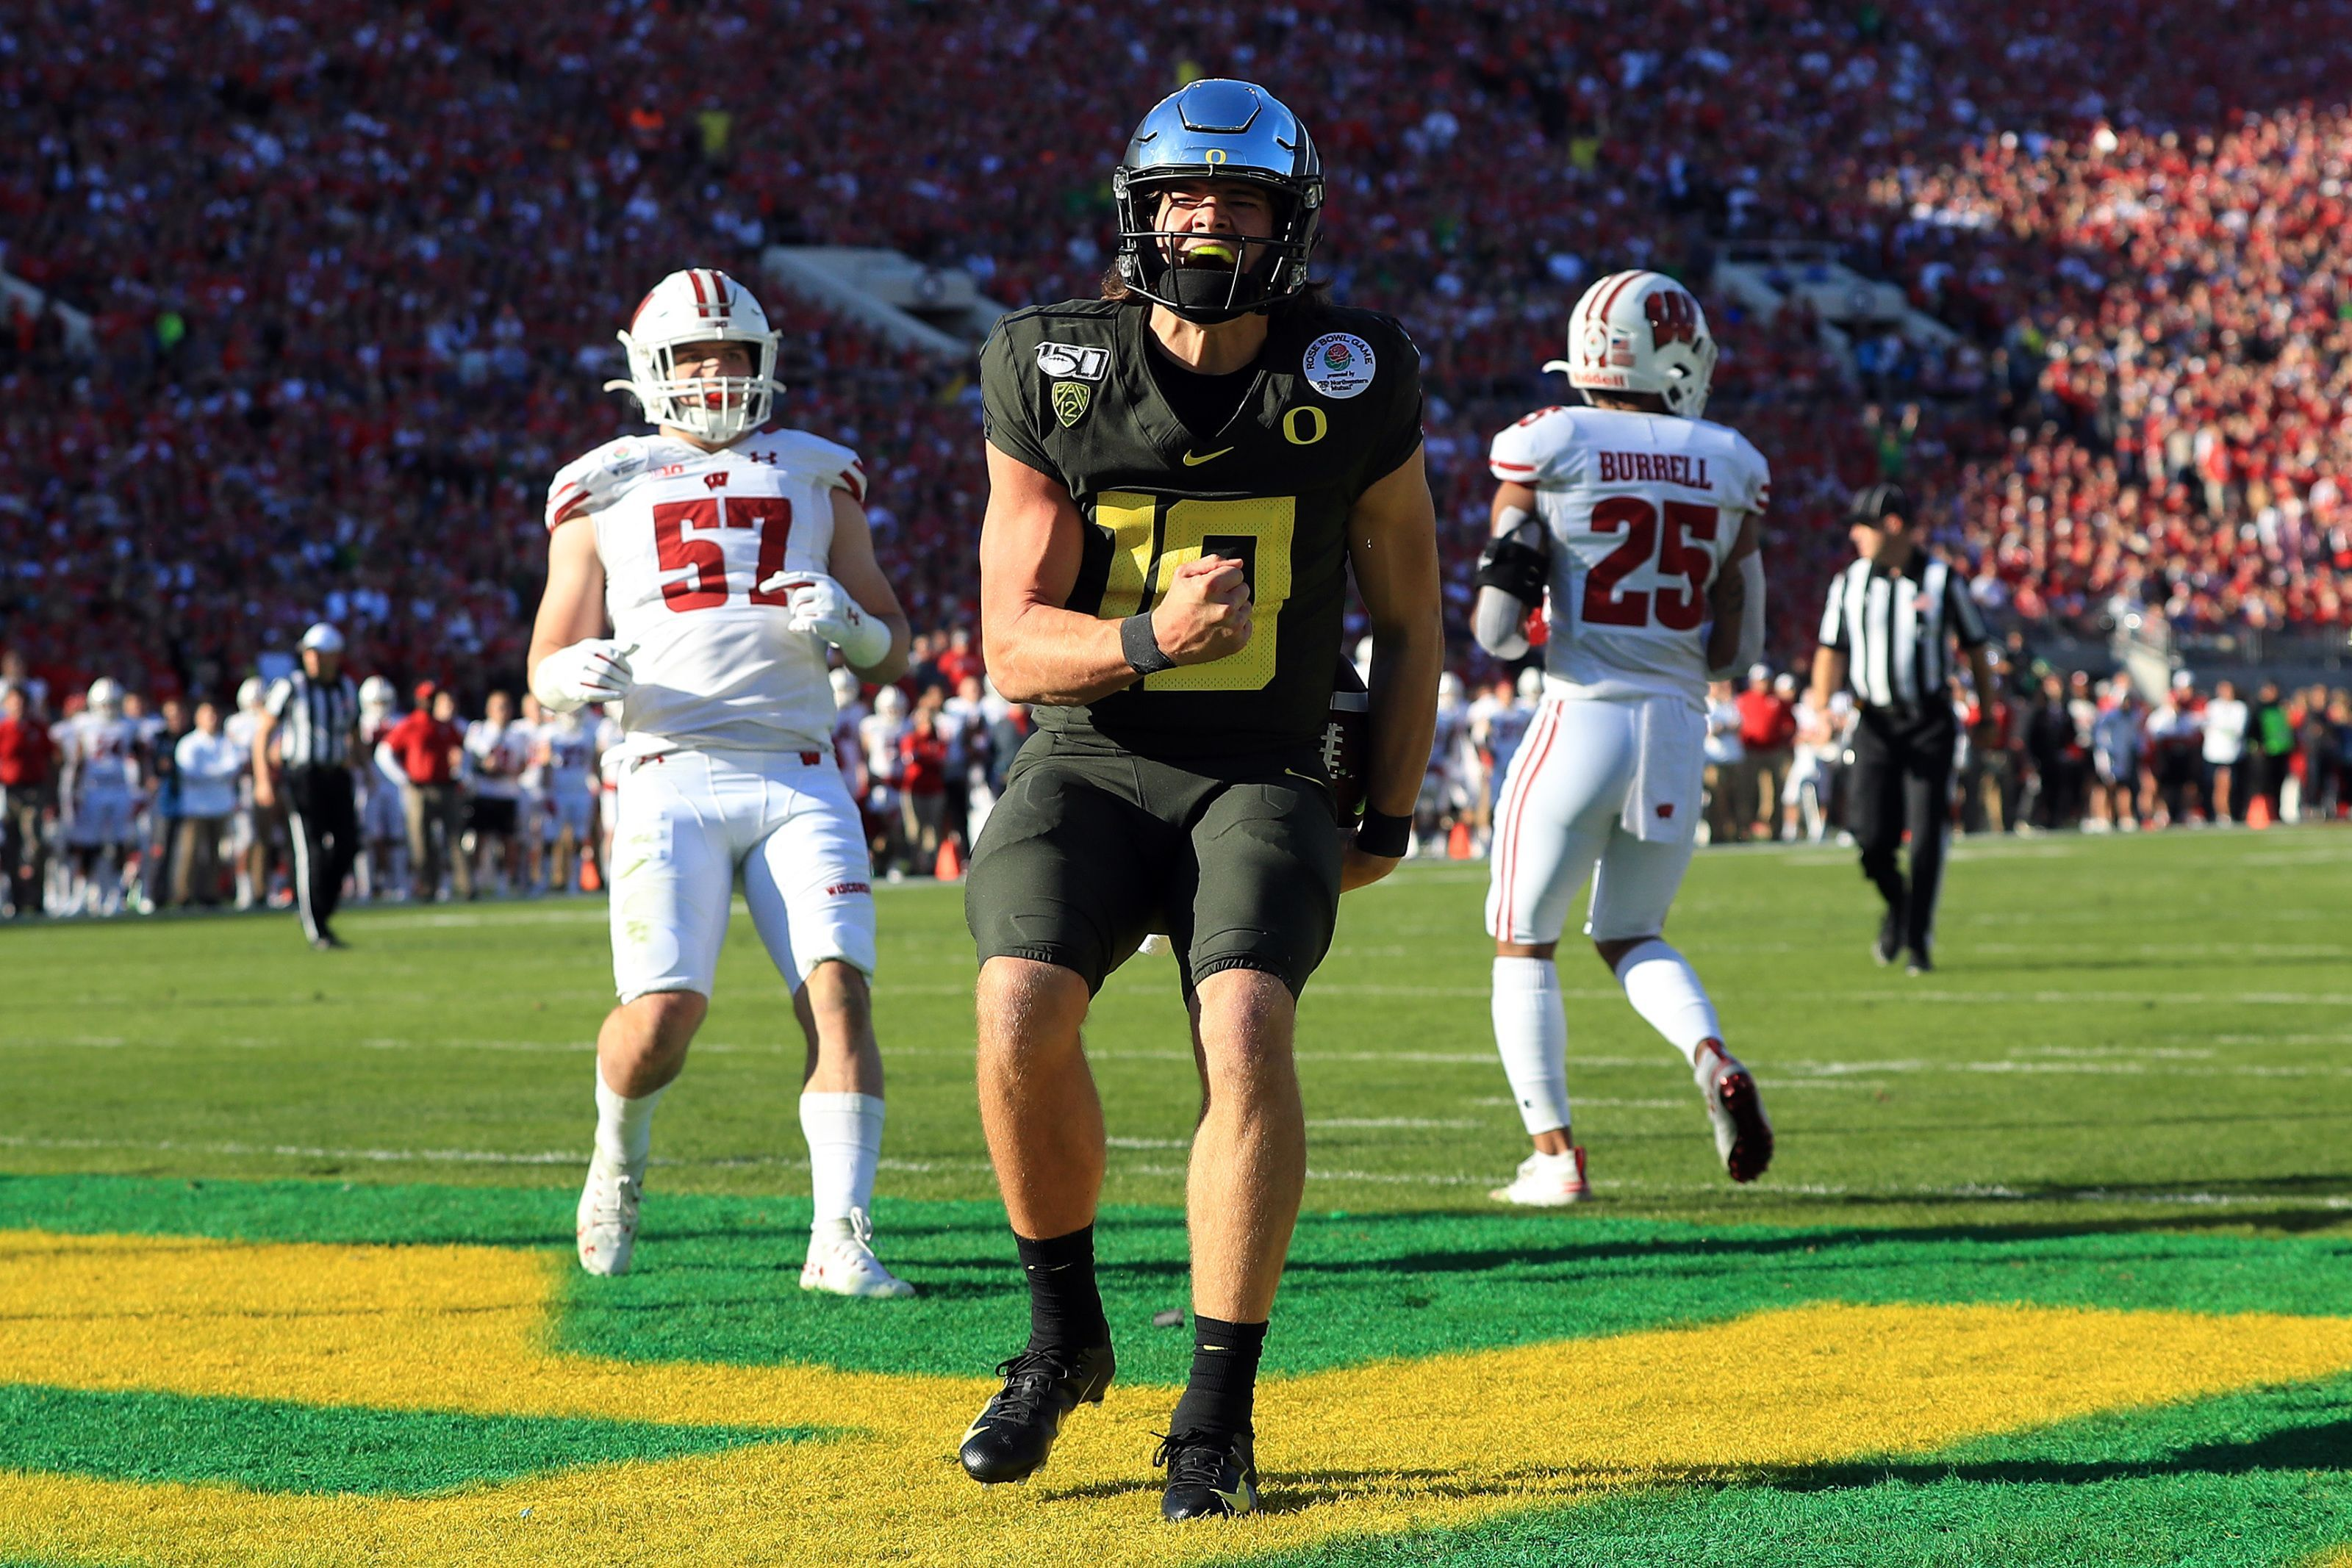 Justin Herbert Makes The Right Call By Heading To The Senior Bowl National Football League News In 2020 Nfl News Oregon Football National Football League